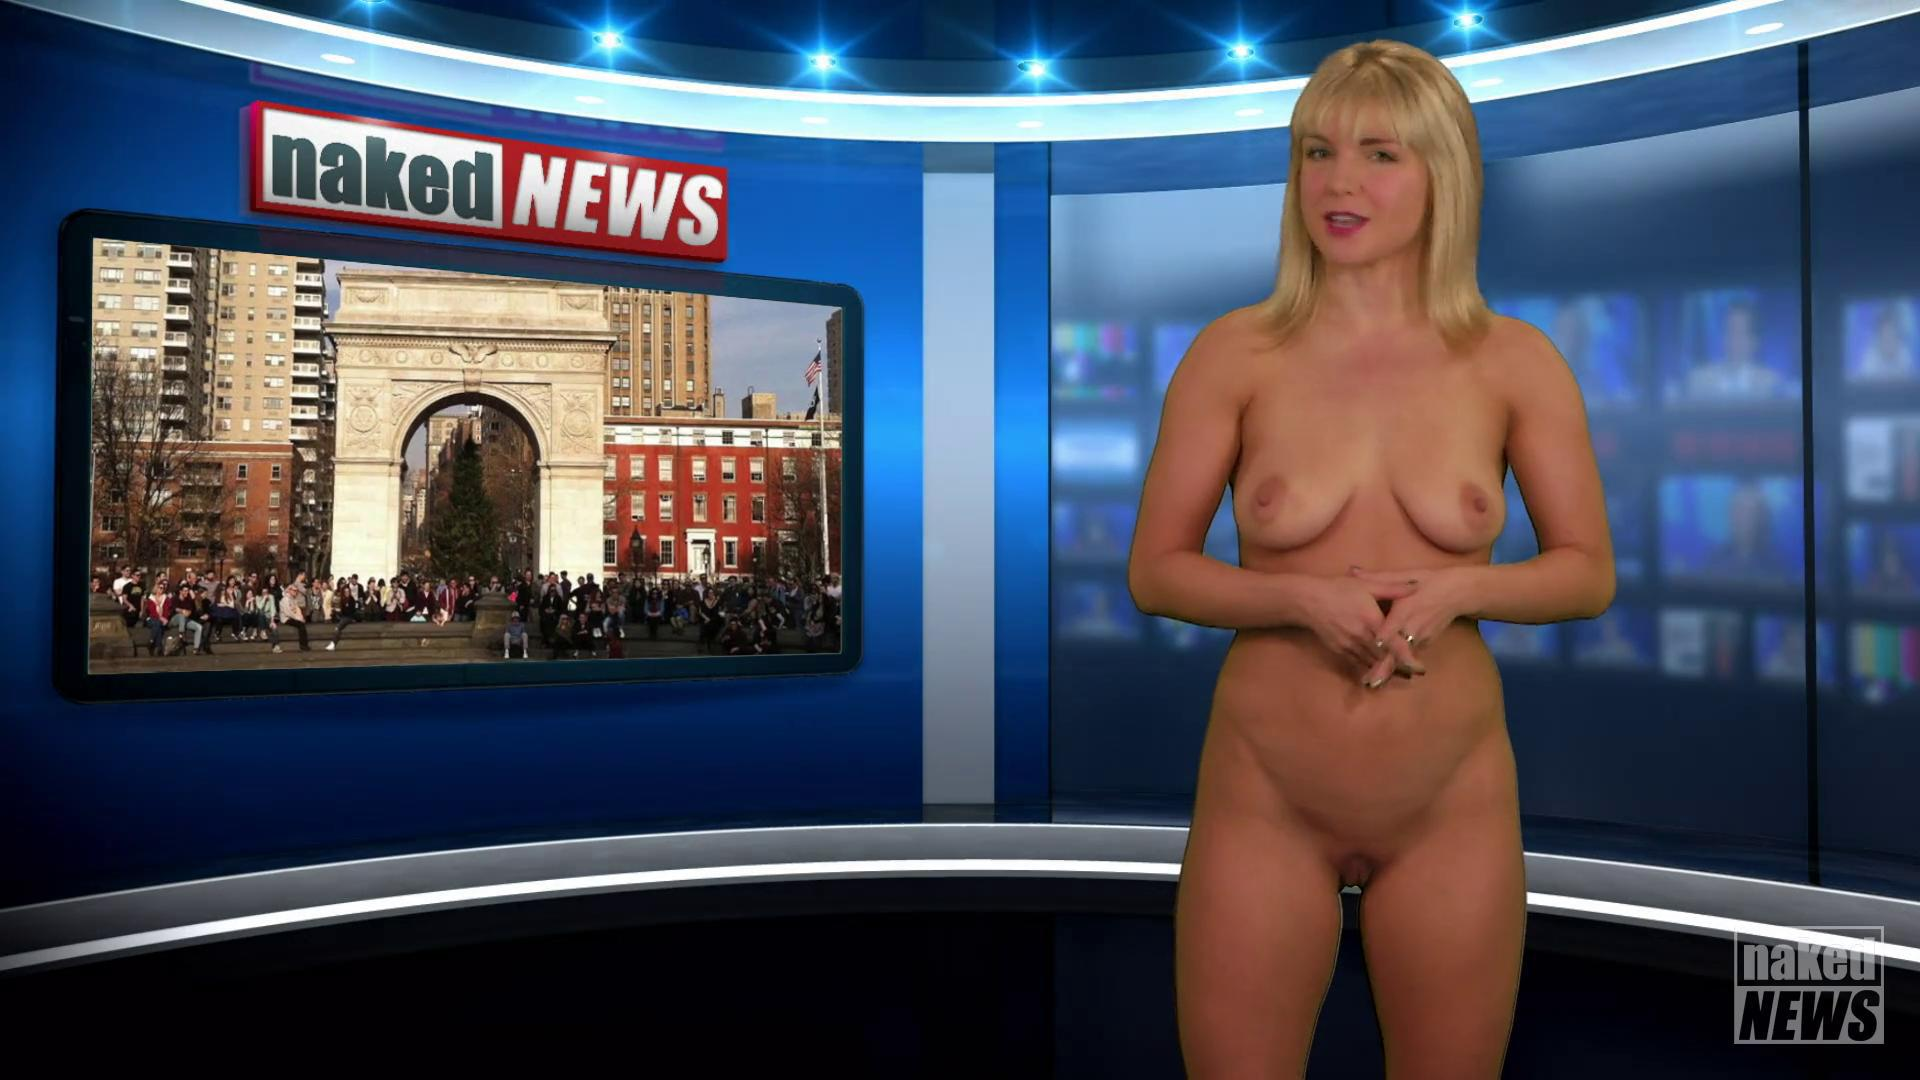 Nude tv anchors